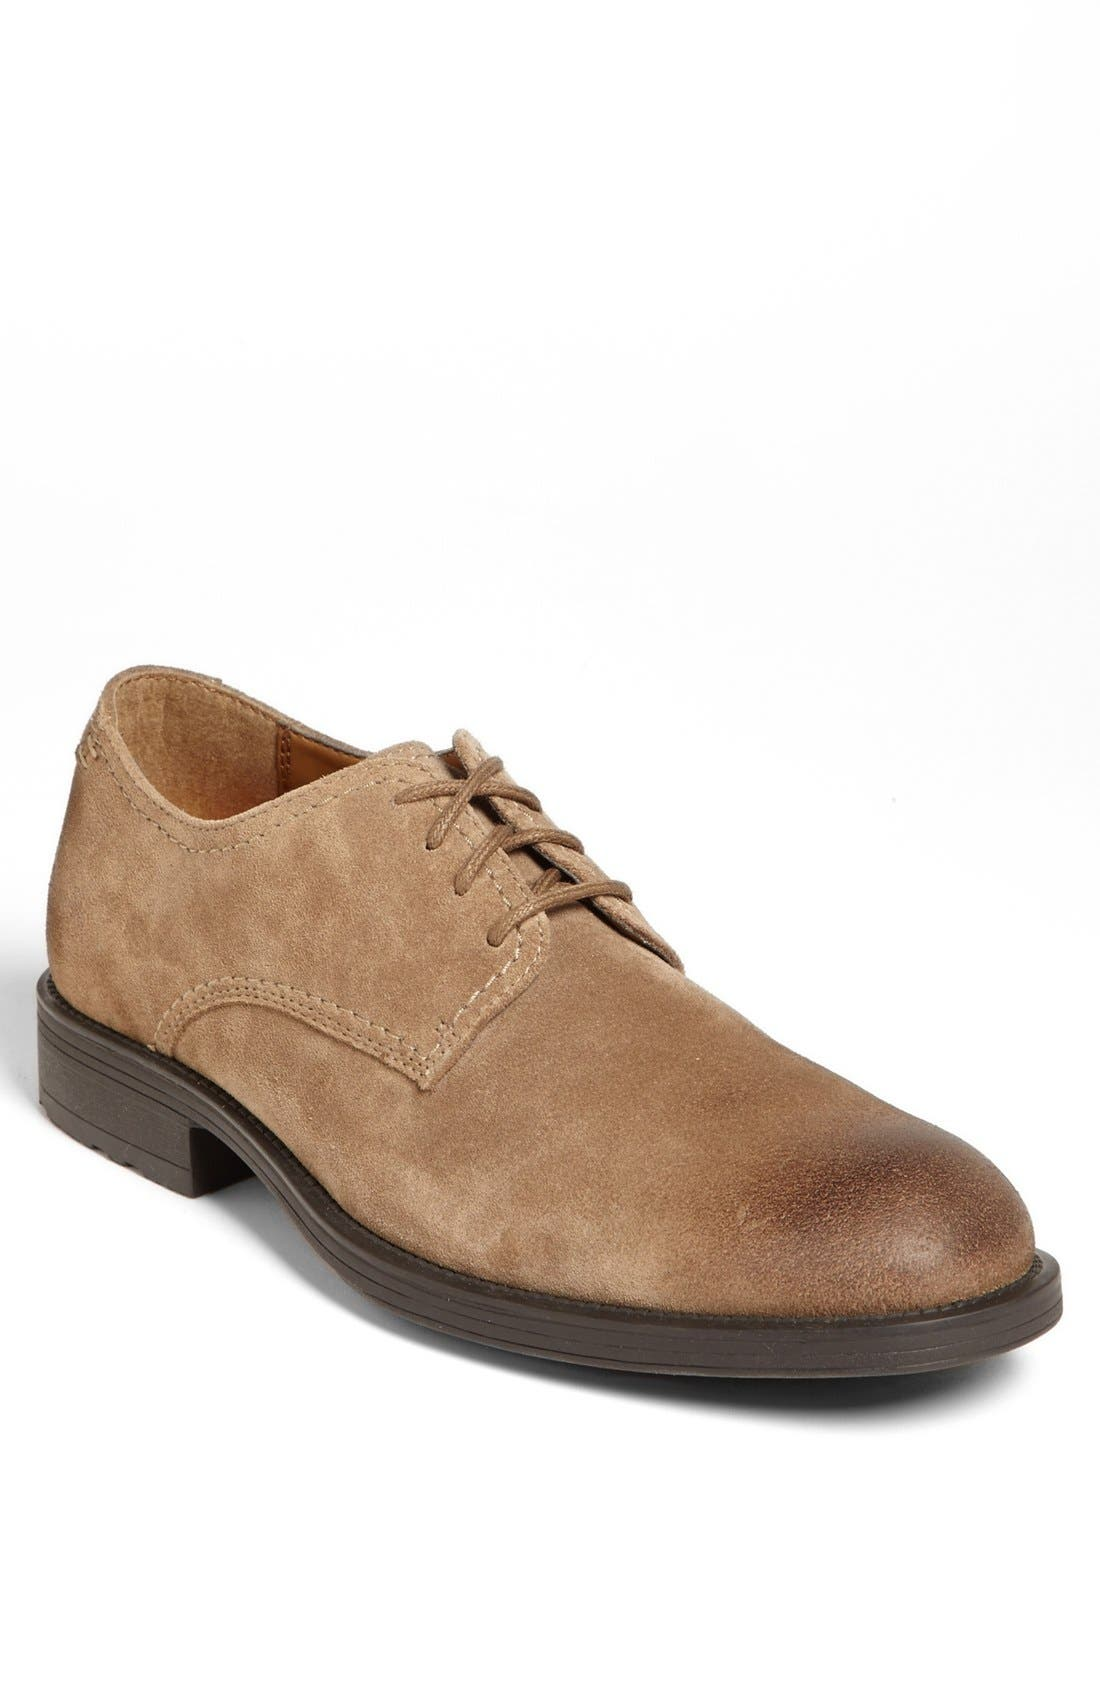 Main Image - Hush Puppies® 'Plane' Buck Shoe